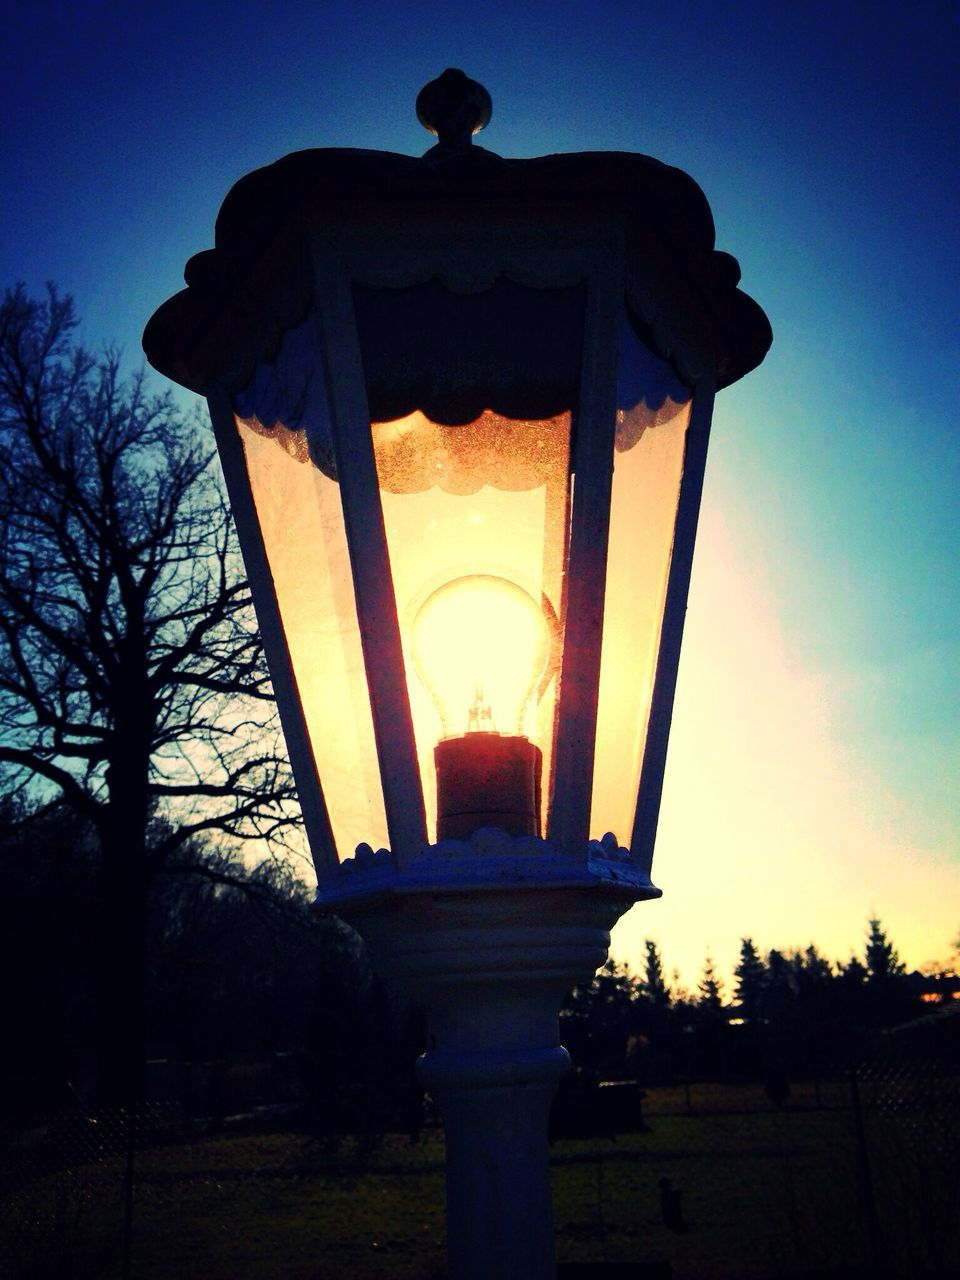 Close-Up Of Illuminated Street Light During Sunset